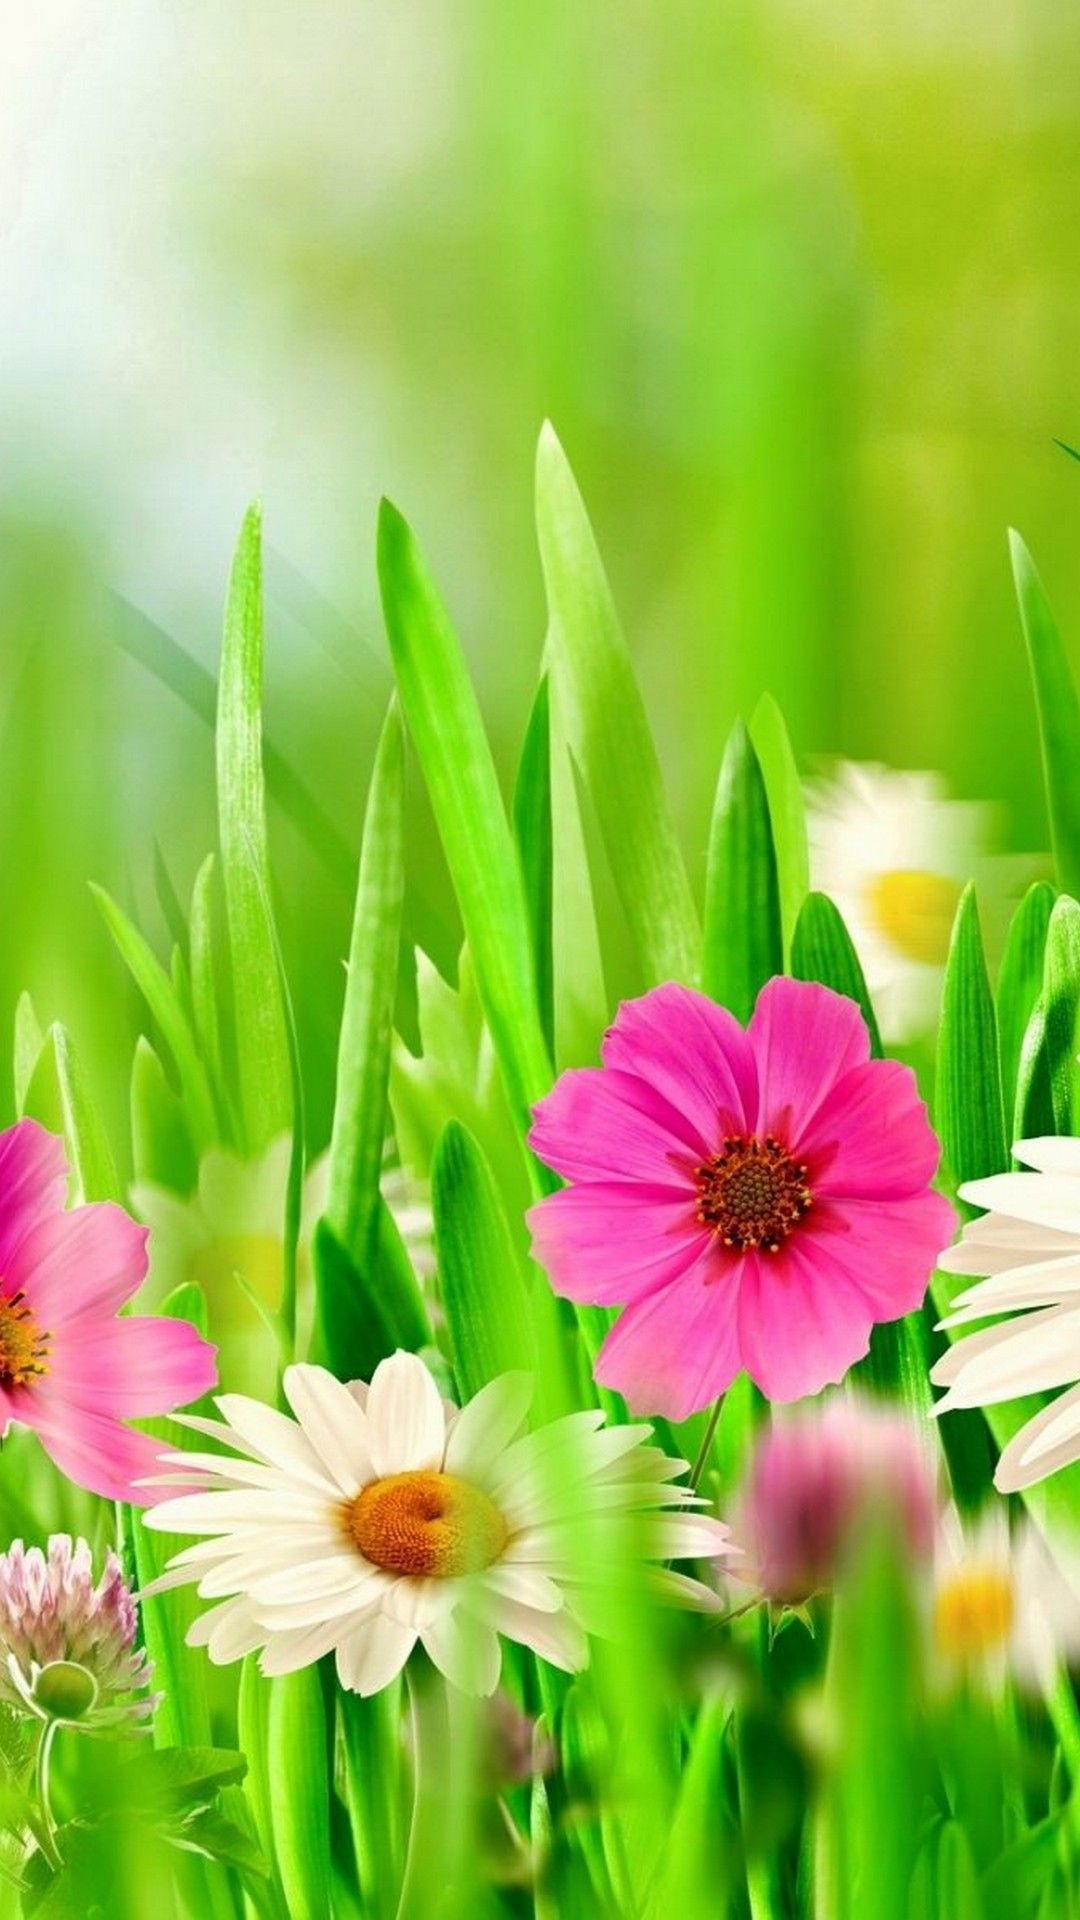 Wallpaper Spring Flowers Iphone Check more at http